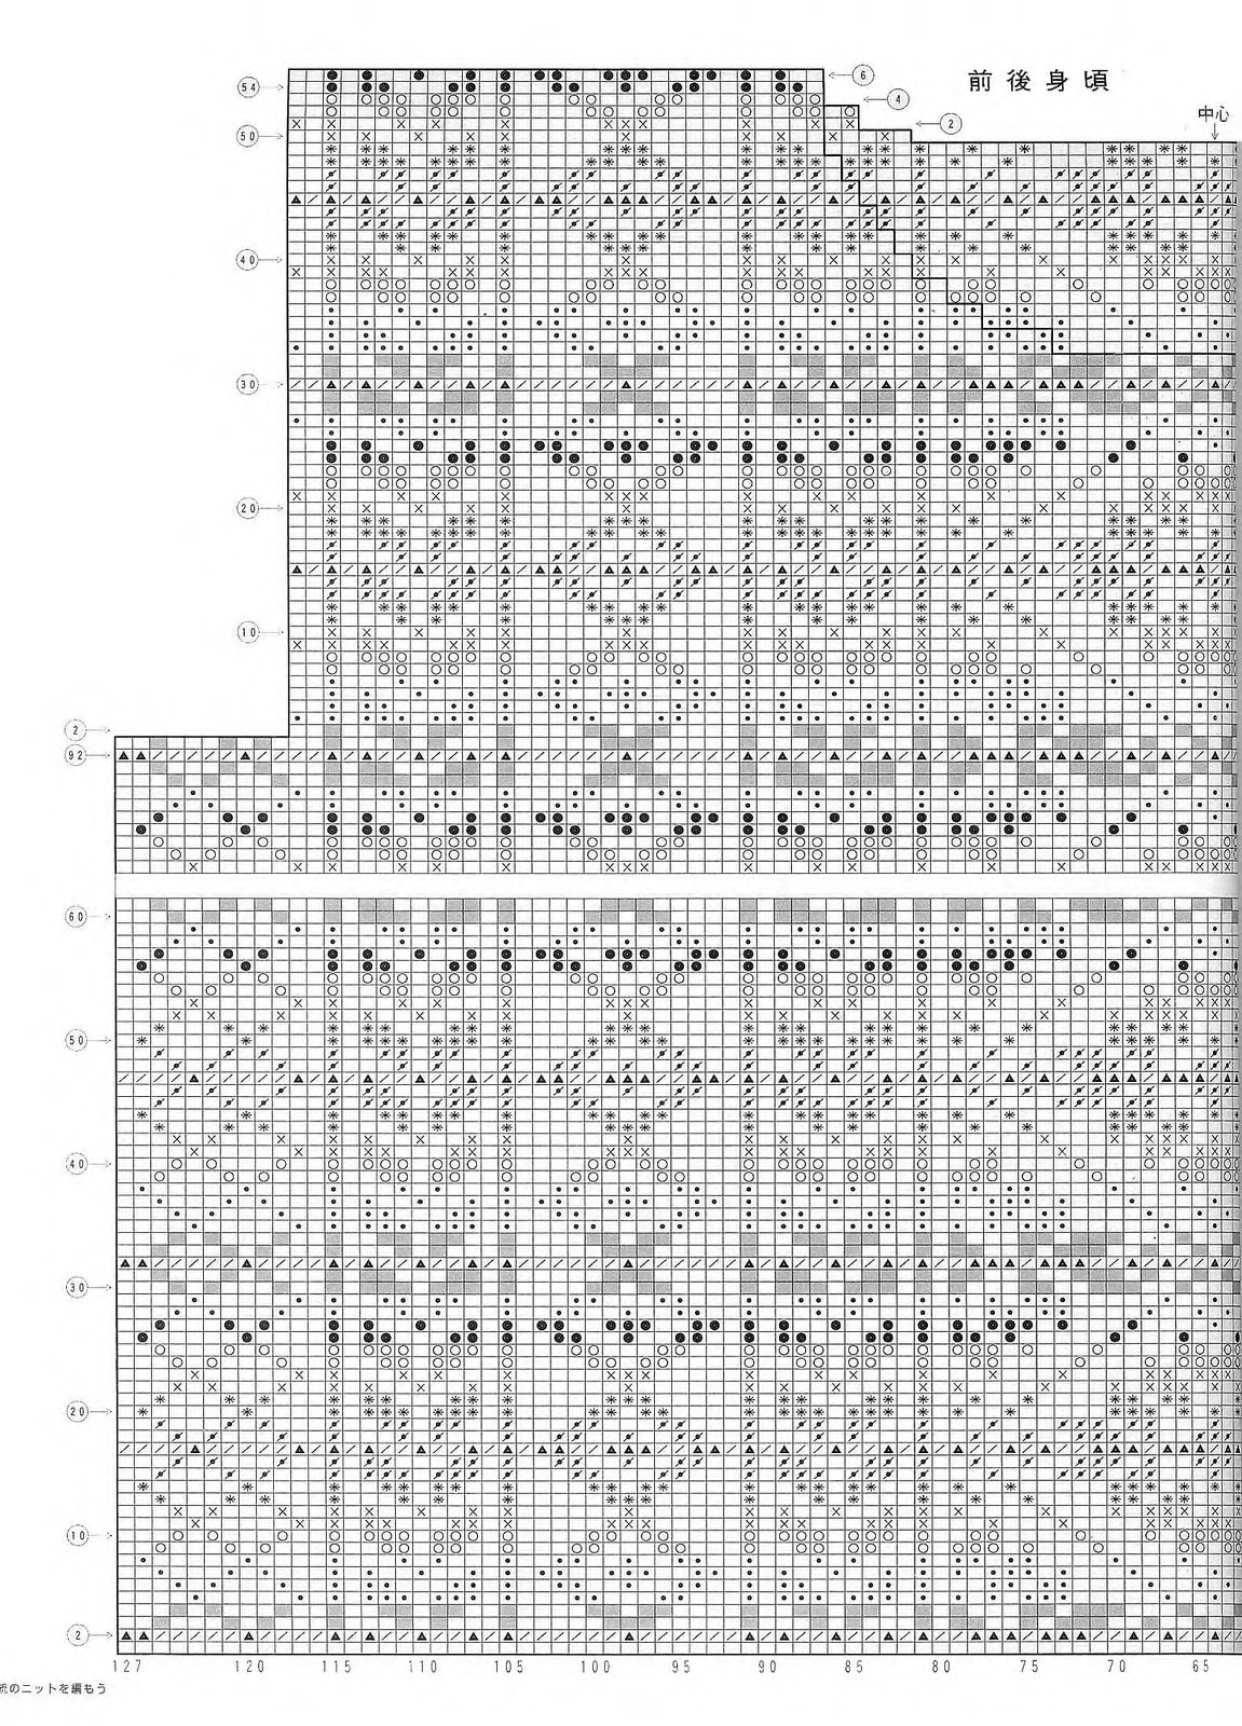 Nordic_and_Lopi_Sweaters_40.jpeg   crochet - aiguilles   Pinterest